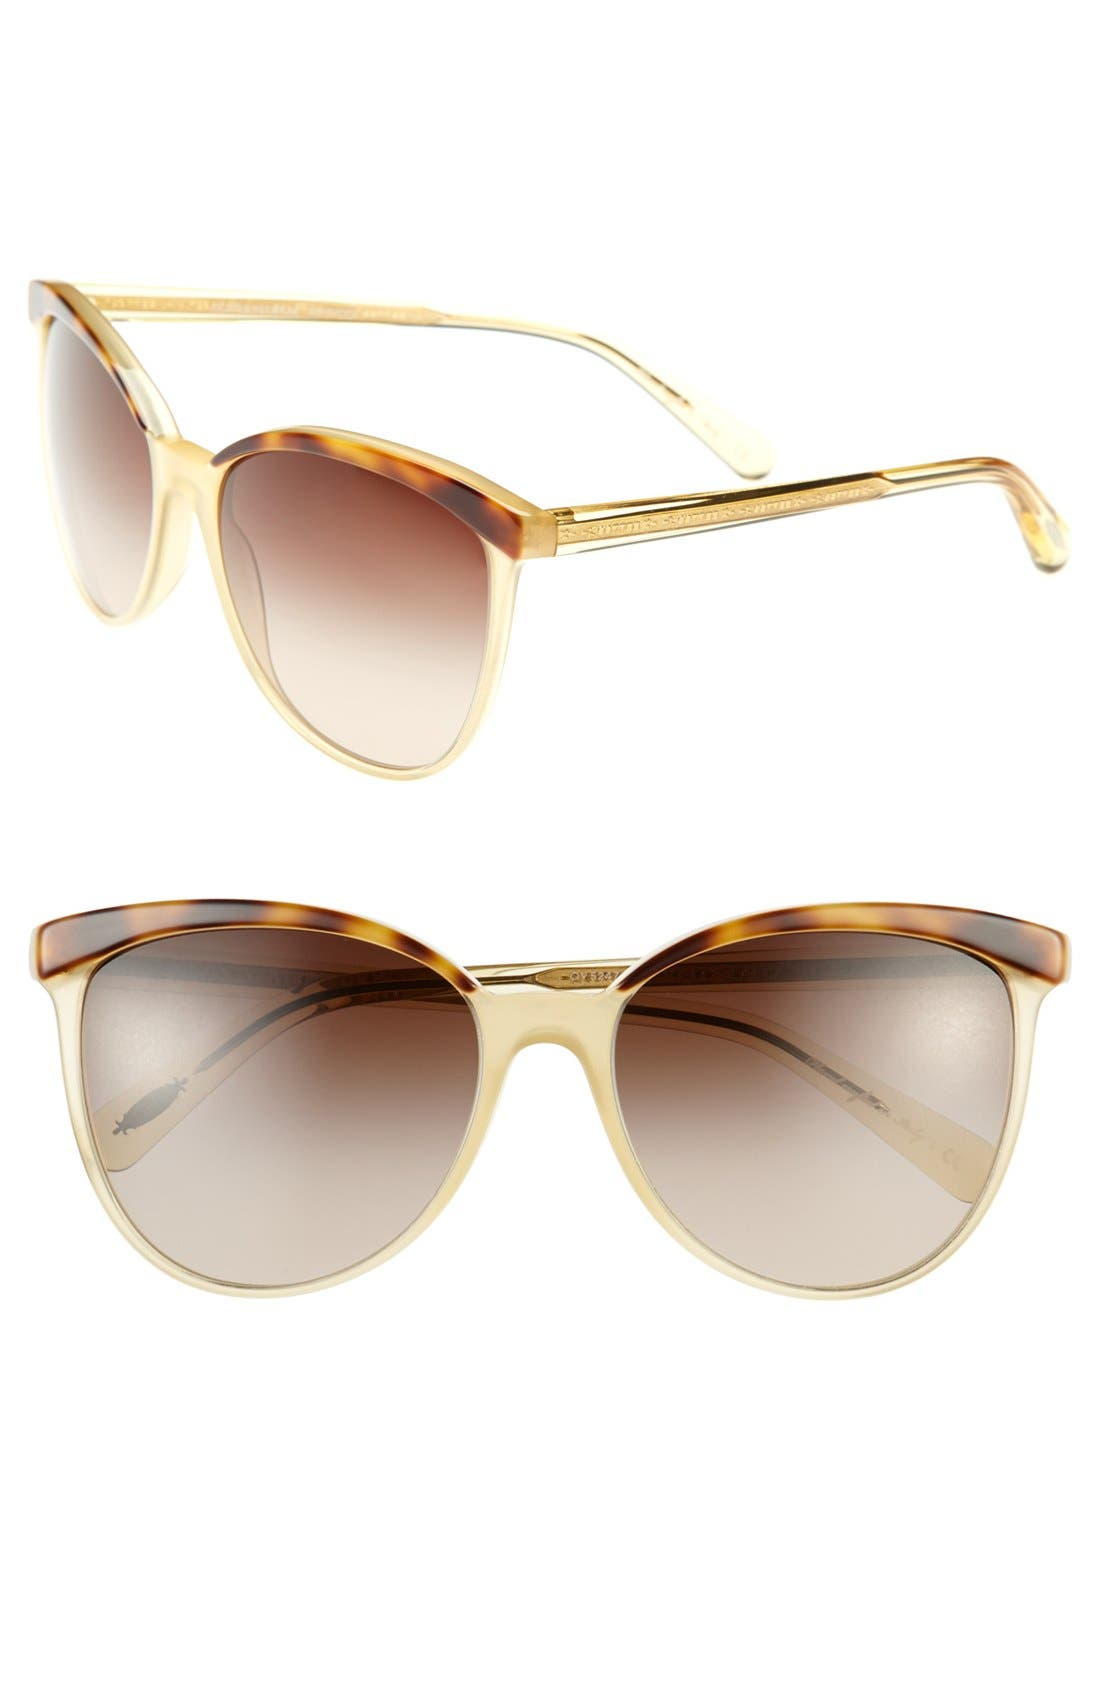 Alternate Image 1 Selected - Oliver Peoples 'Ria' 58mm Sunglasses